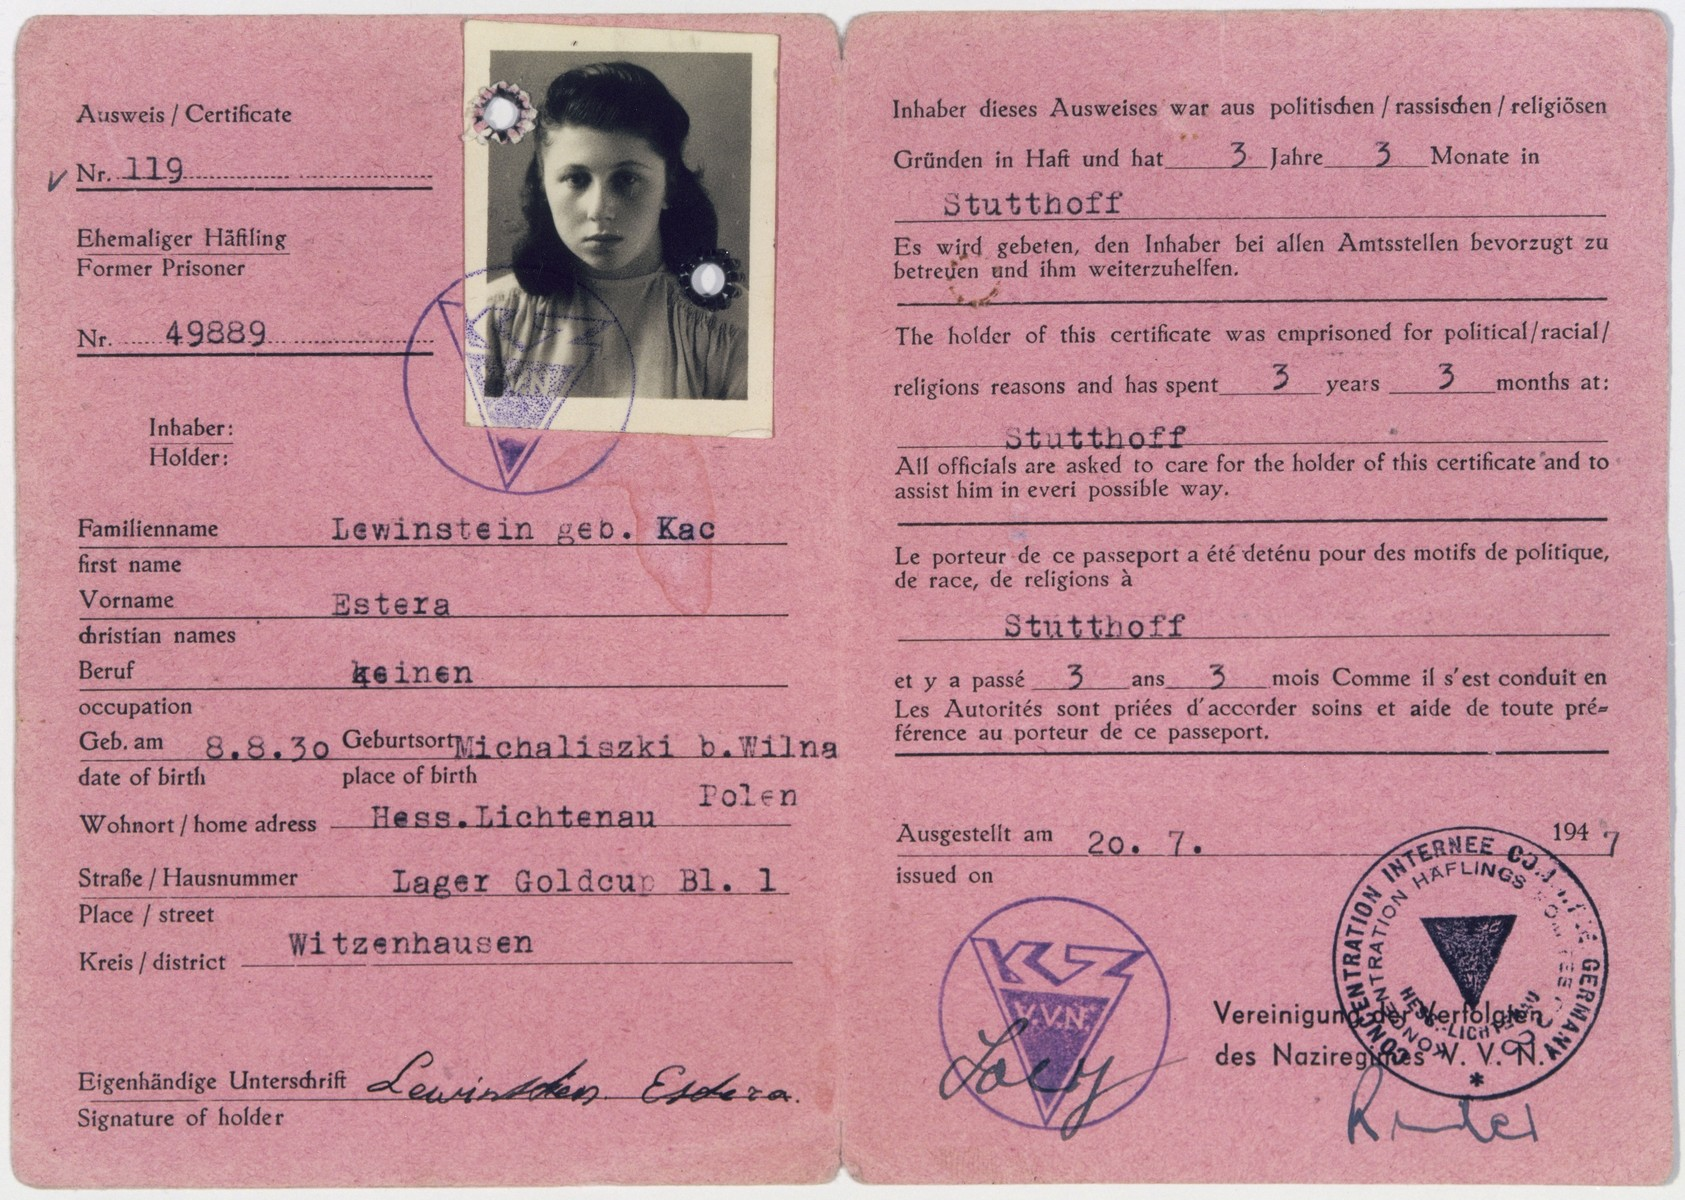 Identification card for Estera Kac Lewinstein (later Esther Livingston), a resident of the Gold Cup displaced persons camp, that certifies she was a former concentration camp prisoner at Stutthof.